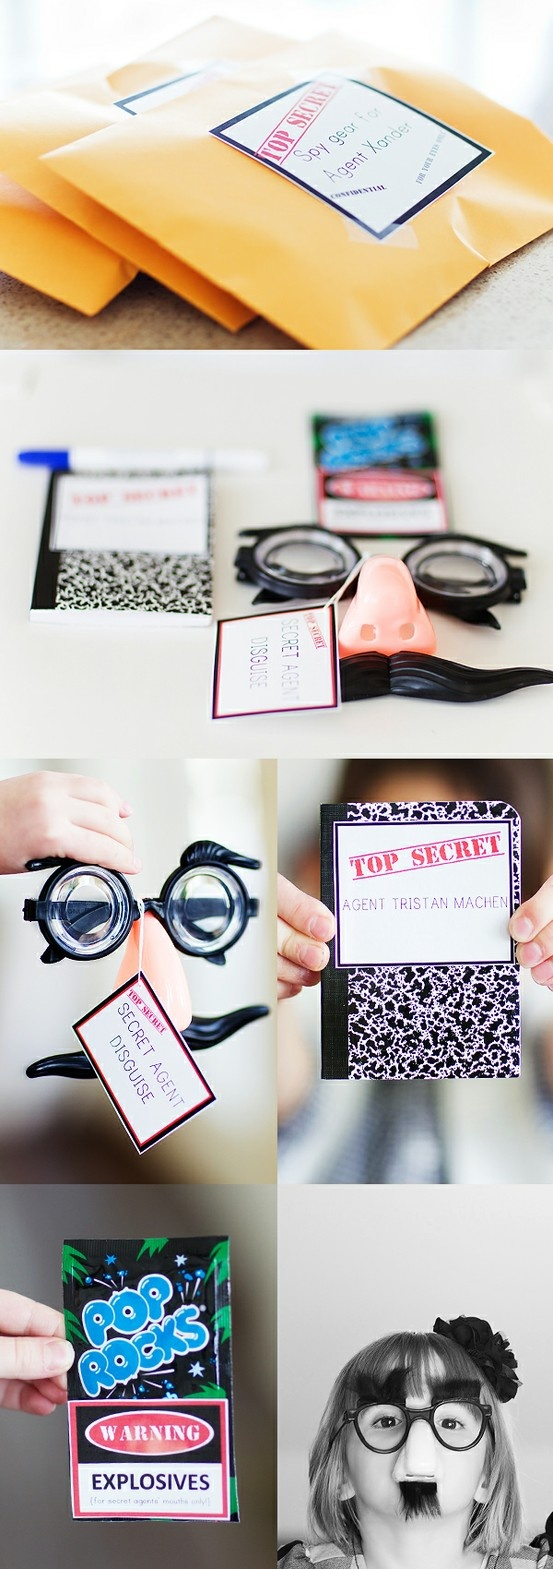 Spy Themed Party For Kids